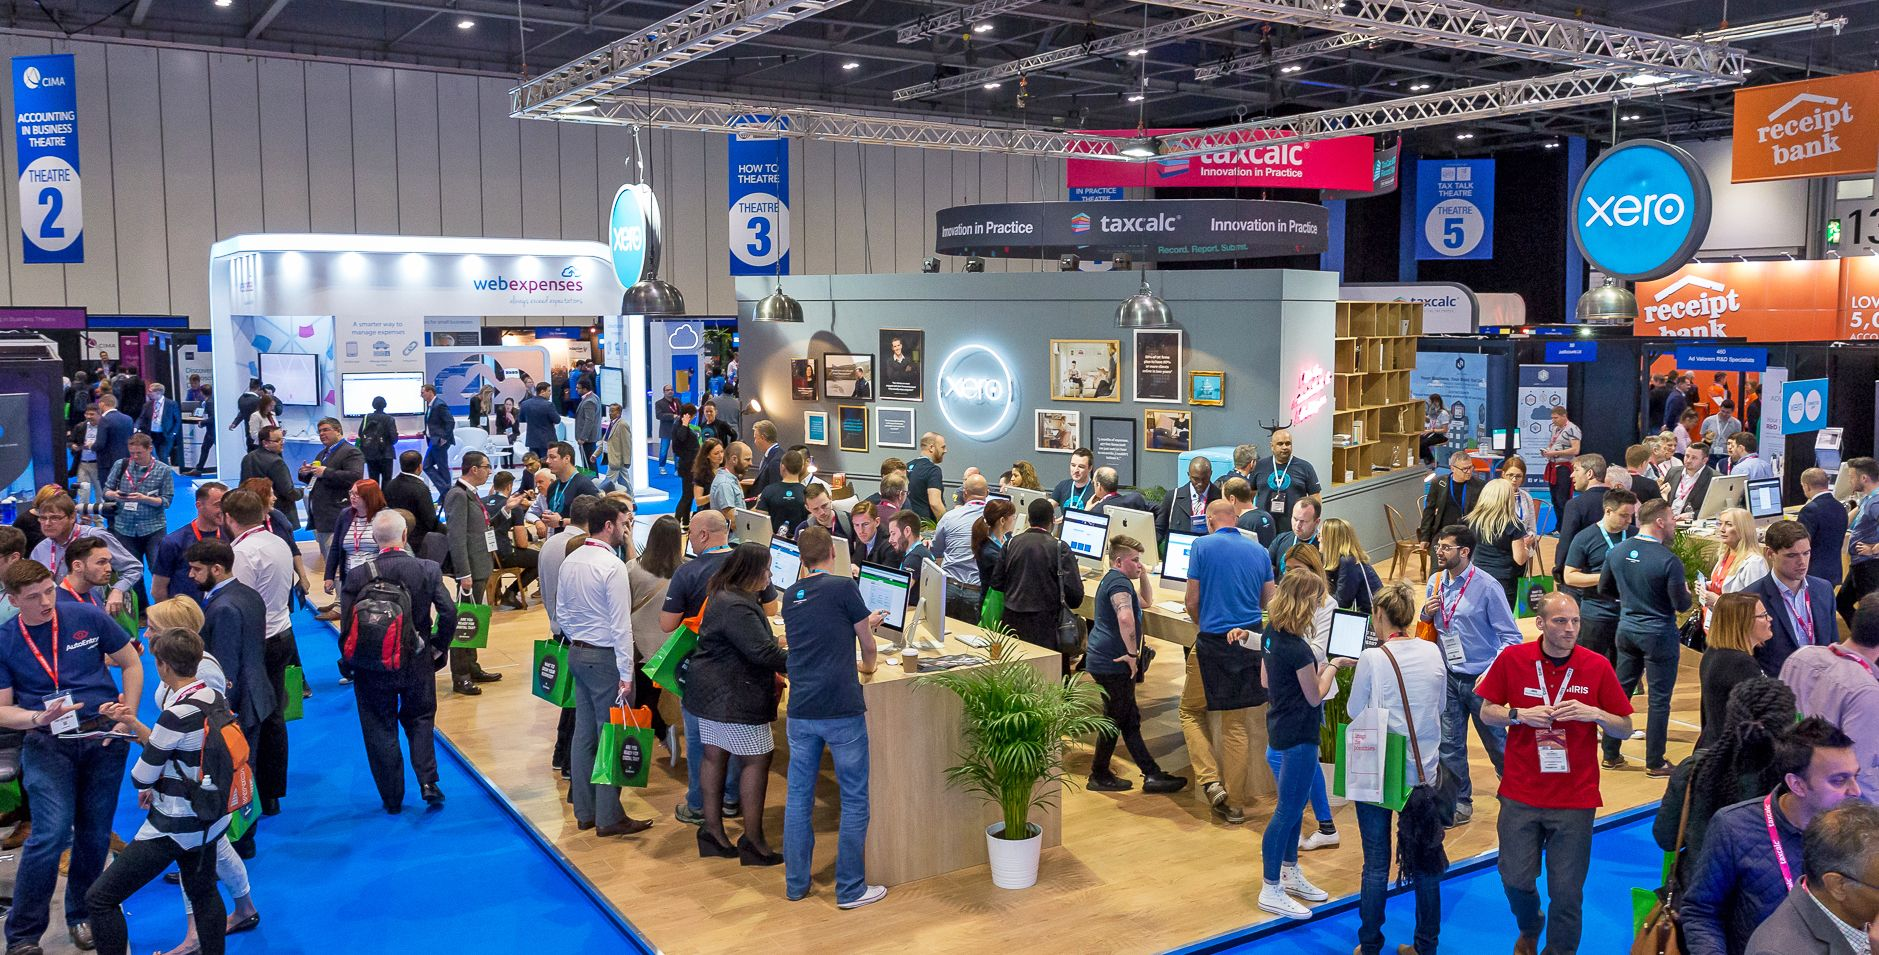 Top 8 reasons to attend Accountex 2019